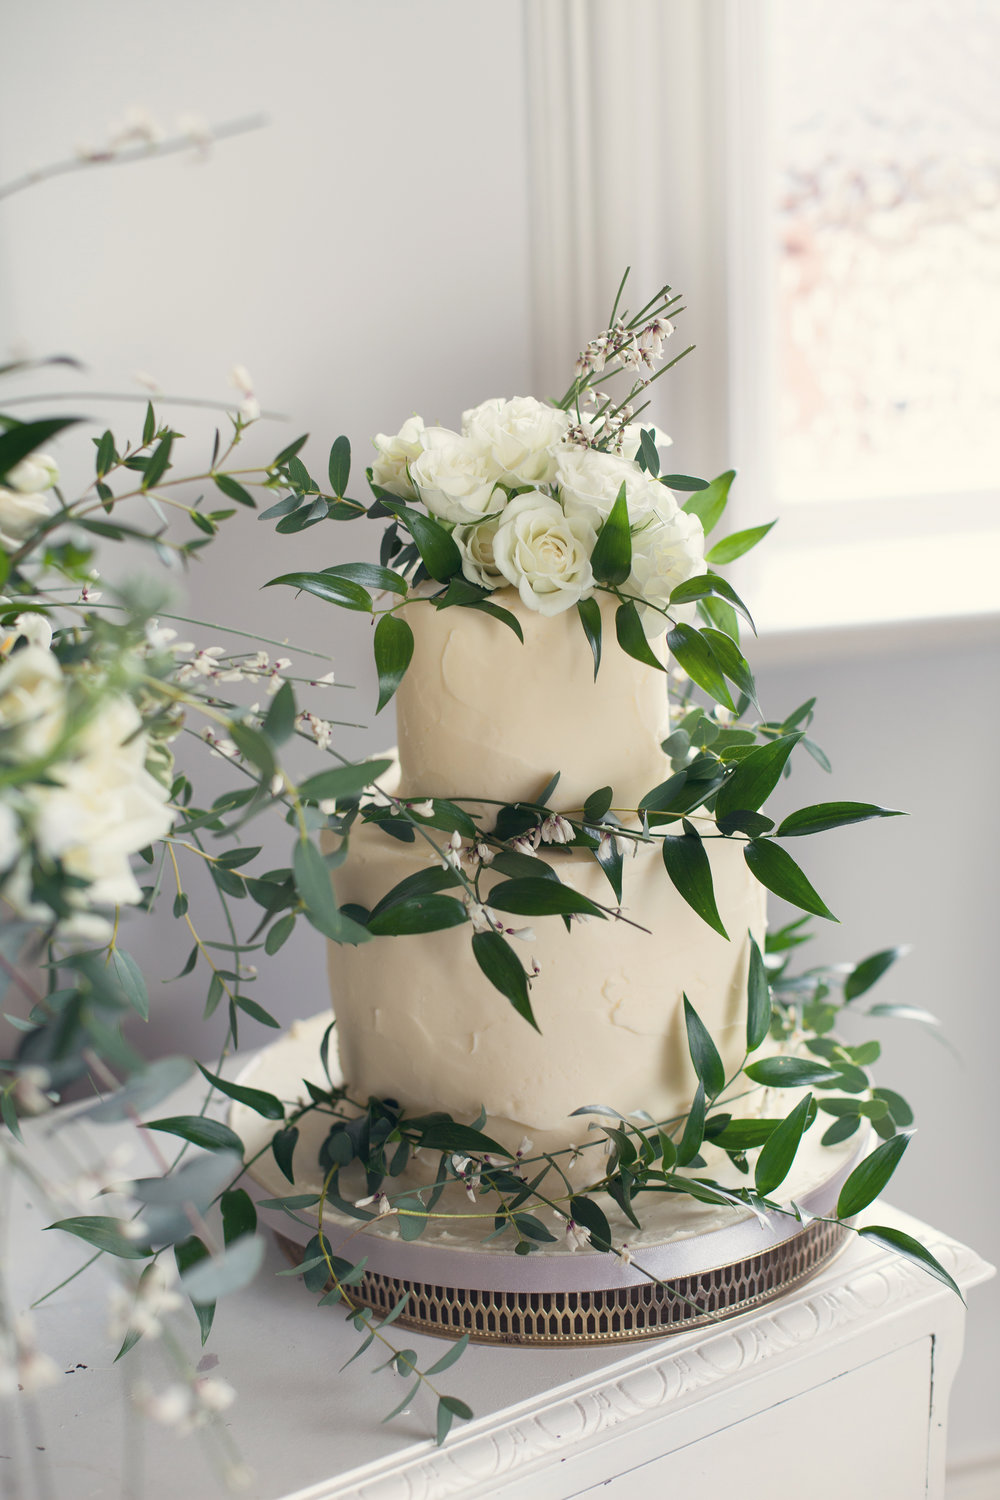 {Rustic Buttercream Cake} Creative & Unique Wedding Cakes | Yummy Little Cakes - Nottingham | www.yummylittlecakes.co.uk